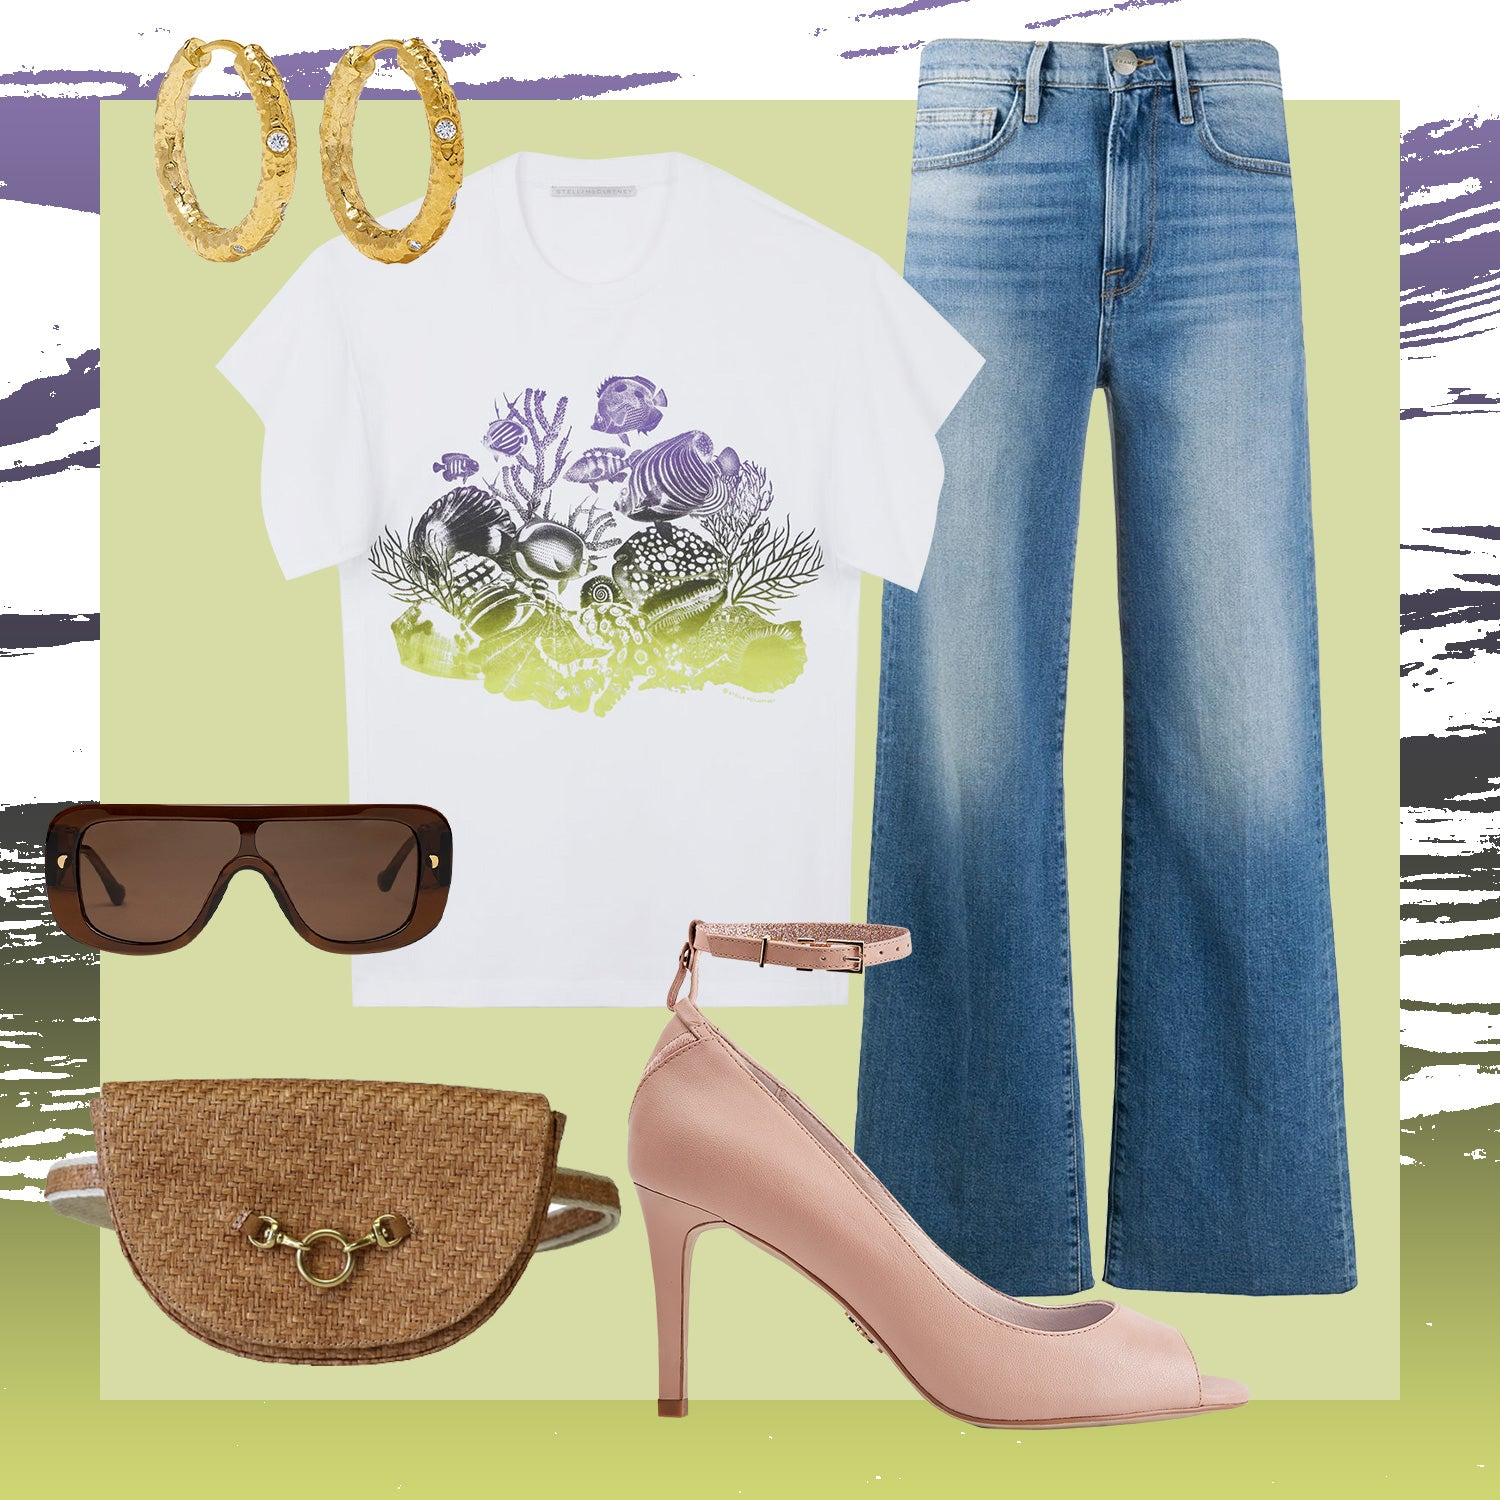 peep toe pump heels with shirt and jeans